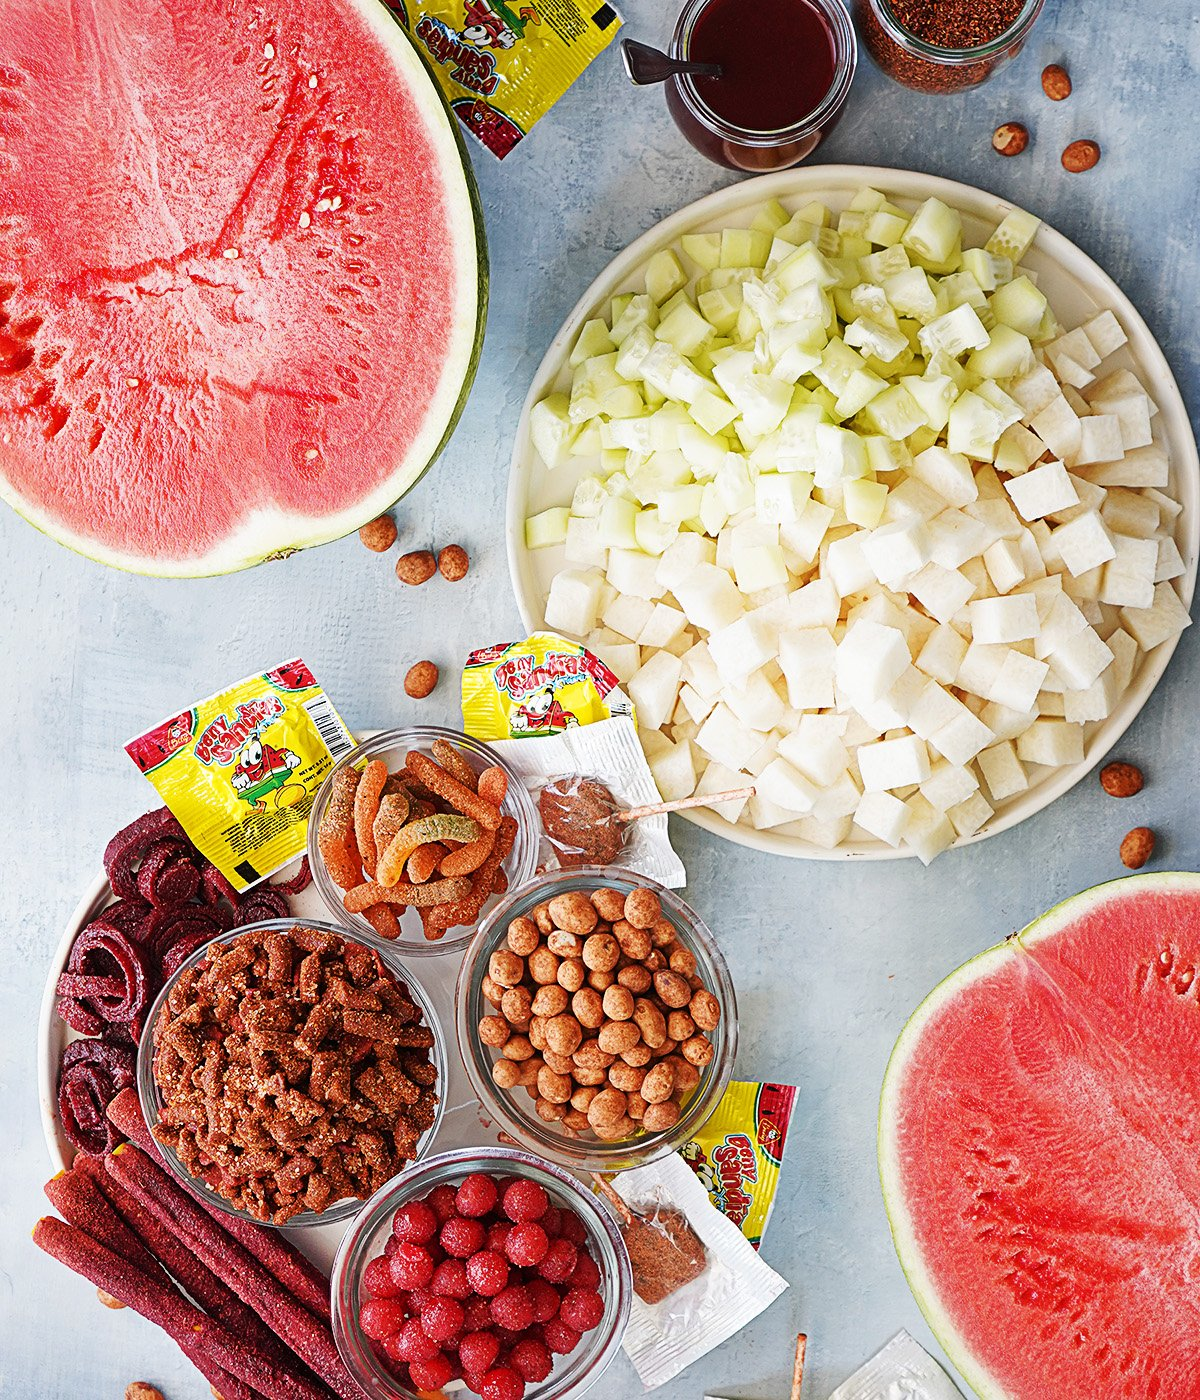 The candy & fruit toppings for Sandia Loca on a blue background.